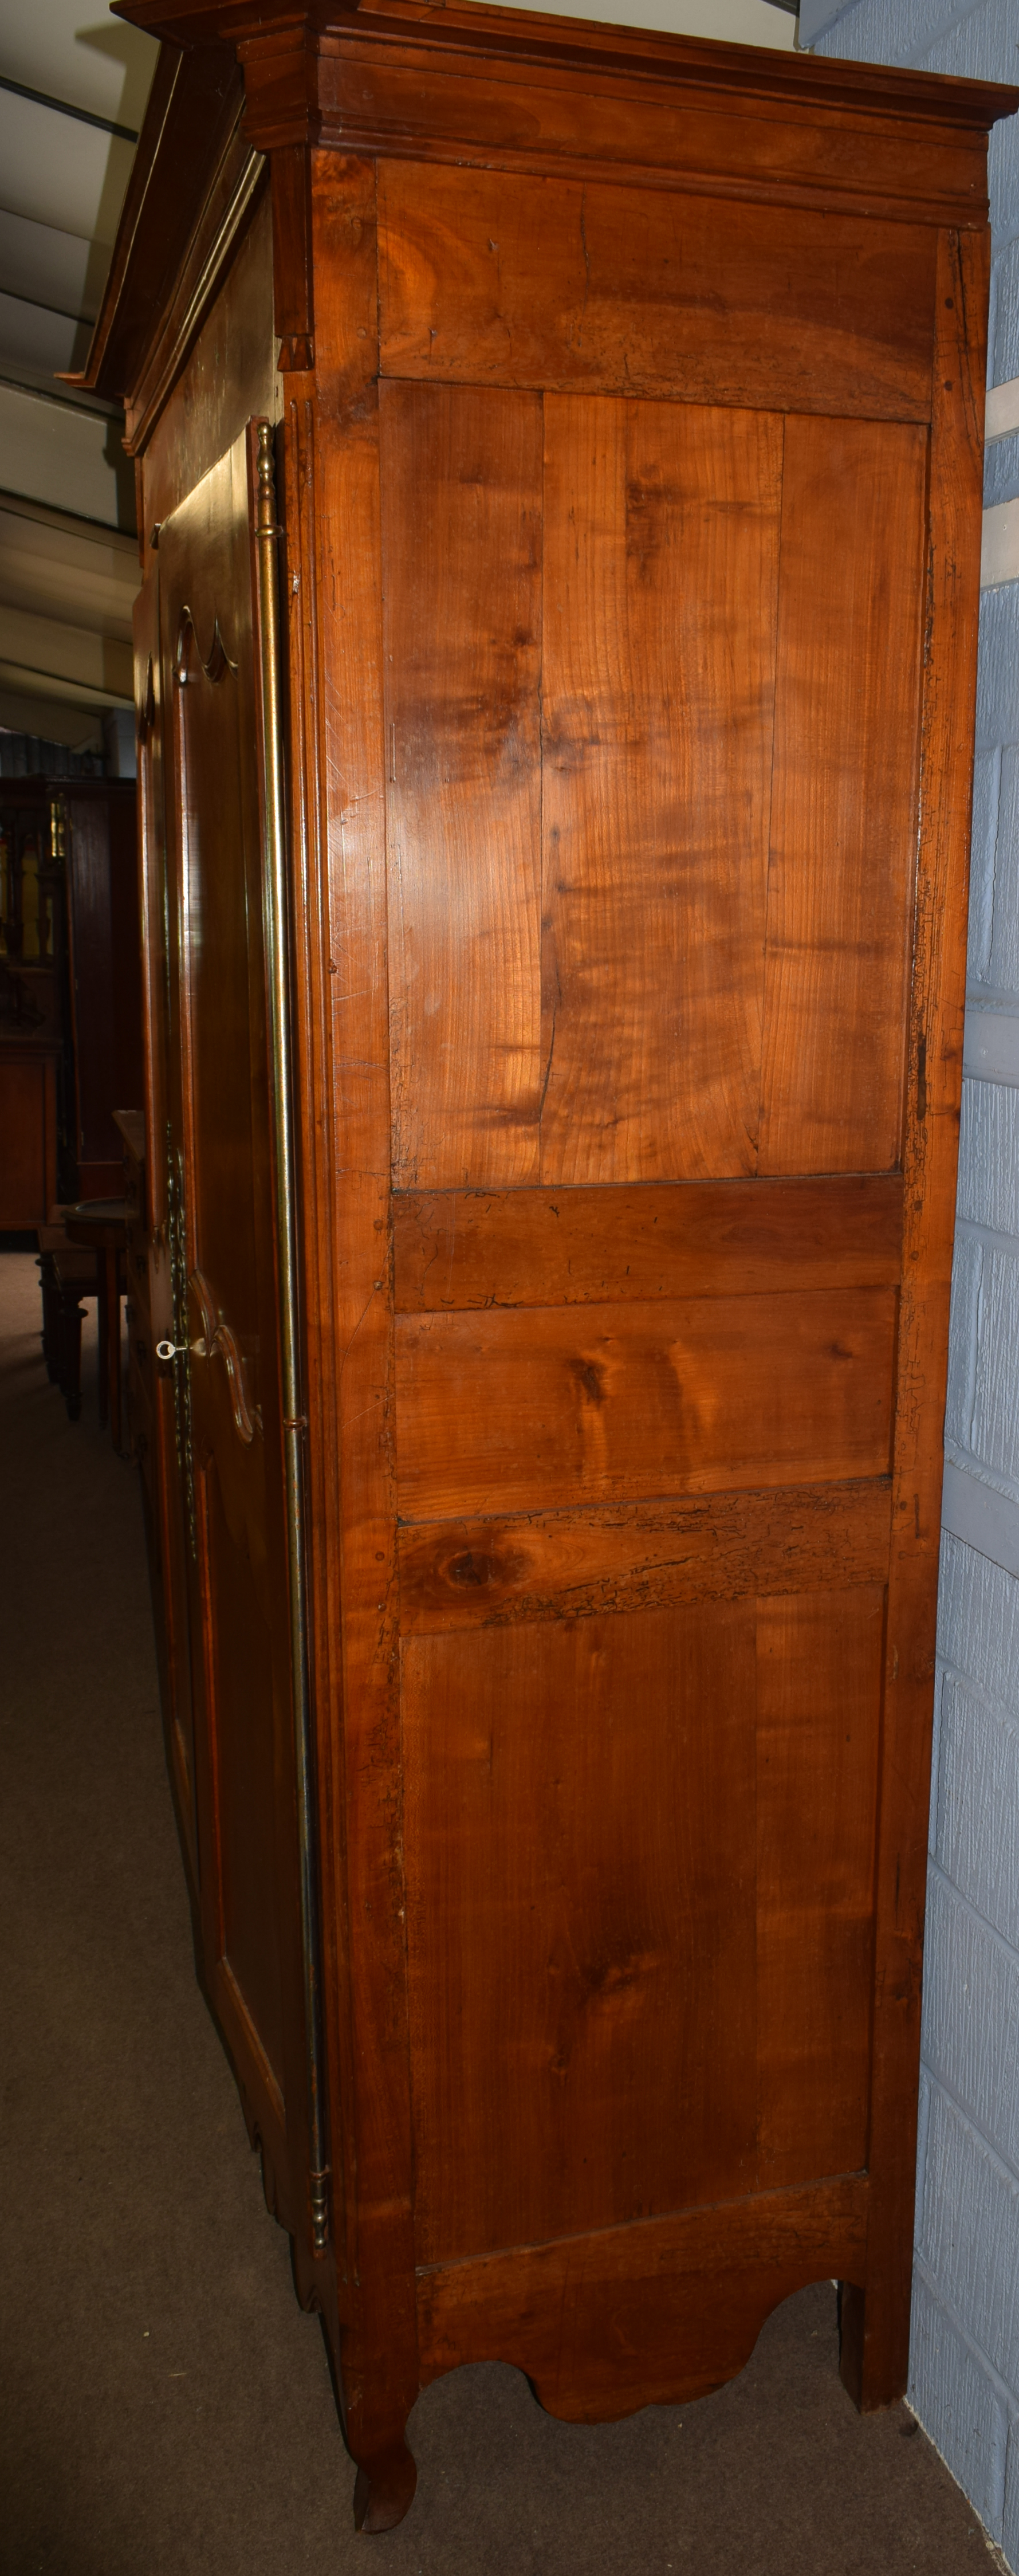 Large inlaid armoire, width approx 140cm Condition: Appears structurally sound^ minor splitting to - Image 5 of 5